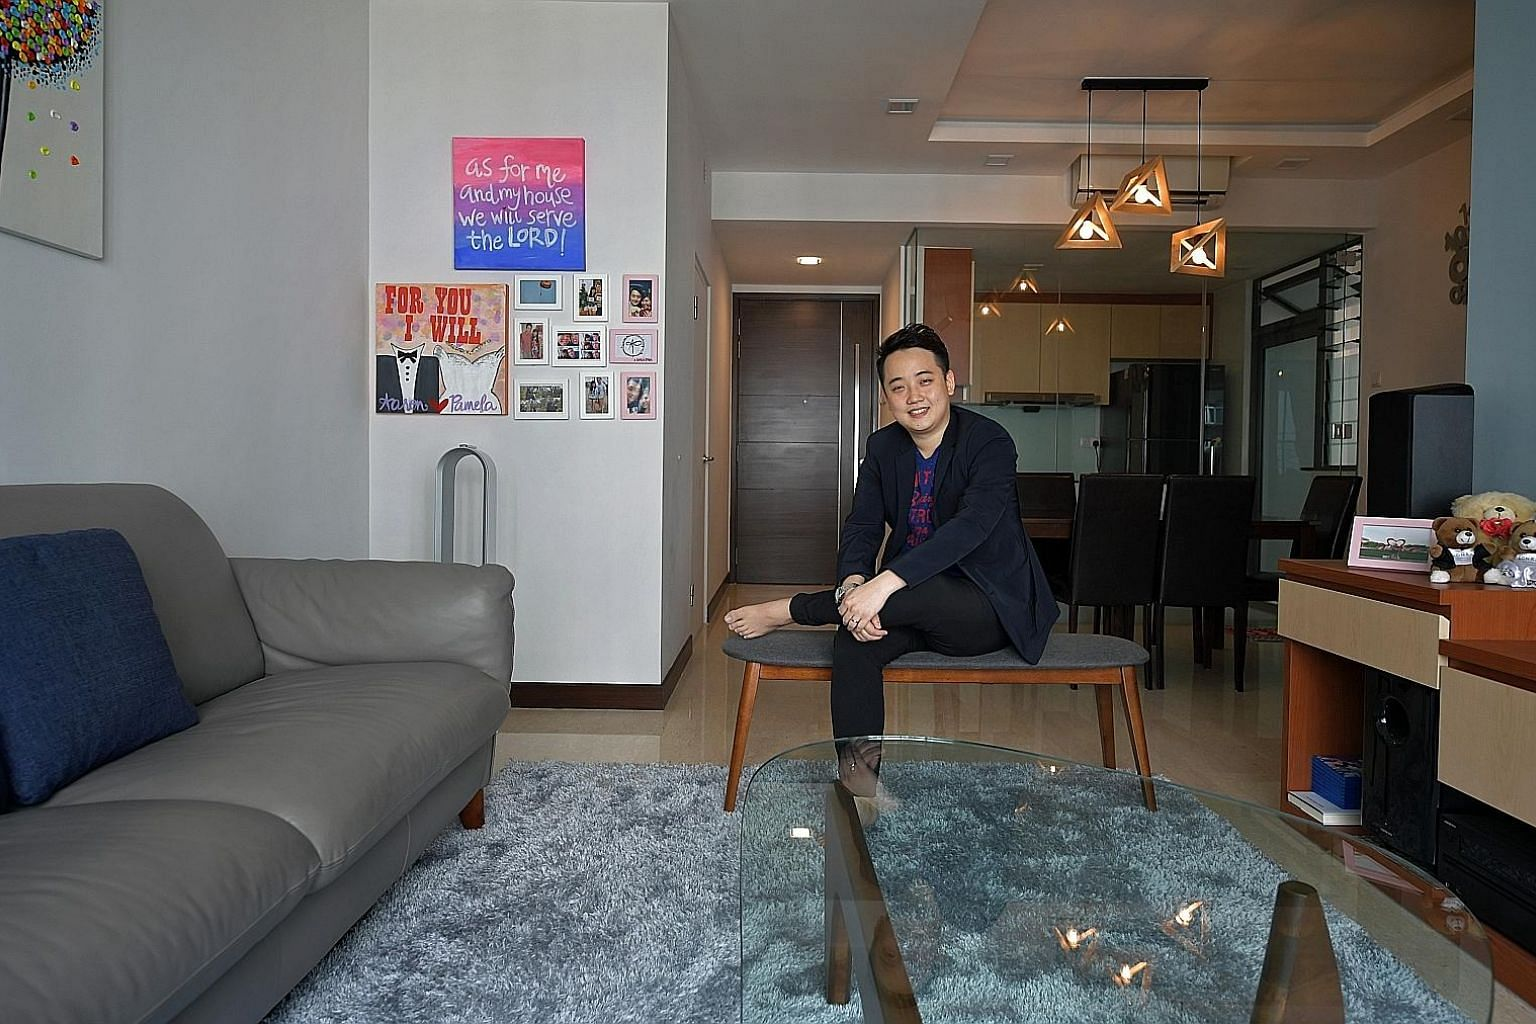 Mr Wan and his wife bought their matrimonial home in the Watermark in Robertson Quay after a long search. They bought the freehold two-bedroom unit at the condo in 2015 for $1.5 million. Mr Aaron Wan, 29, an associate director in a property firm, is